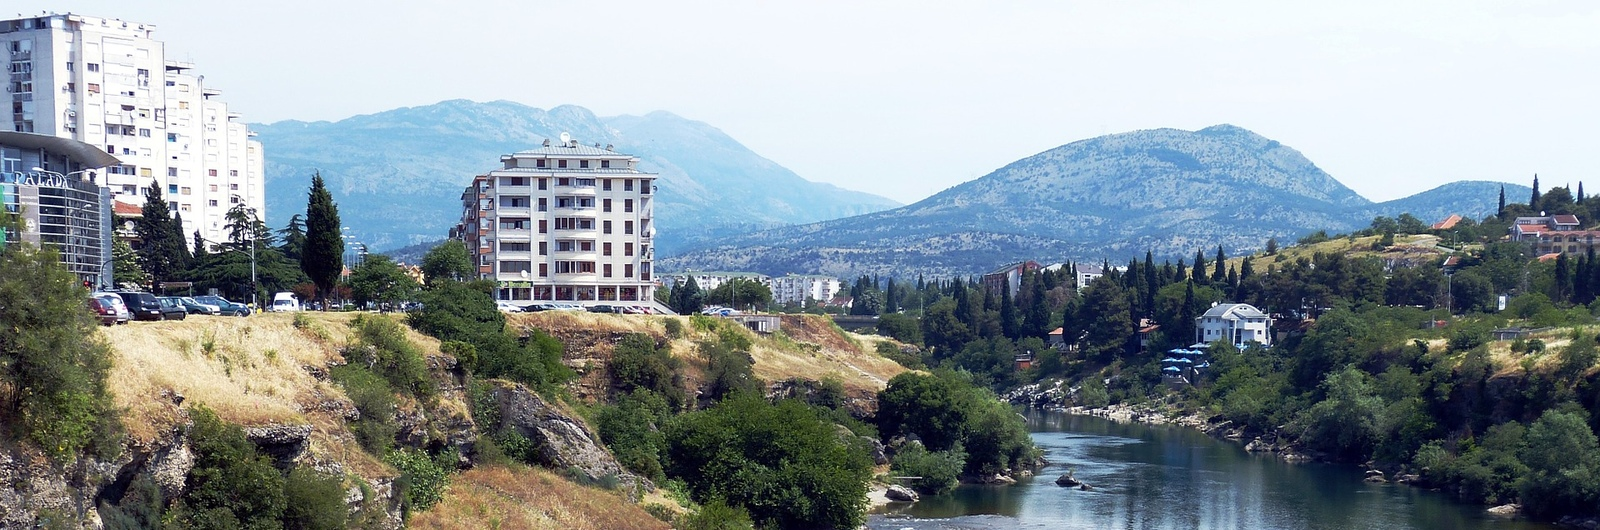 podgorica city header